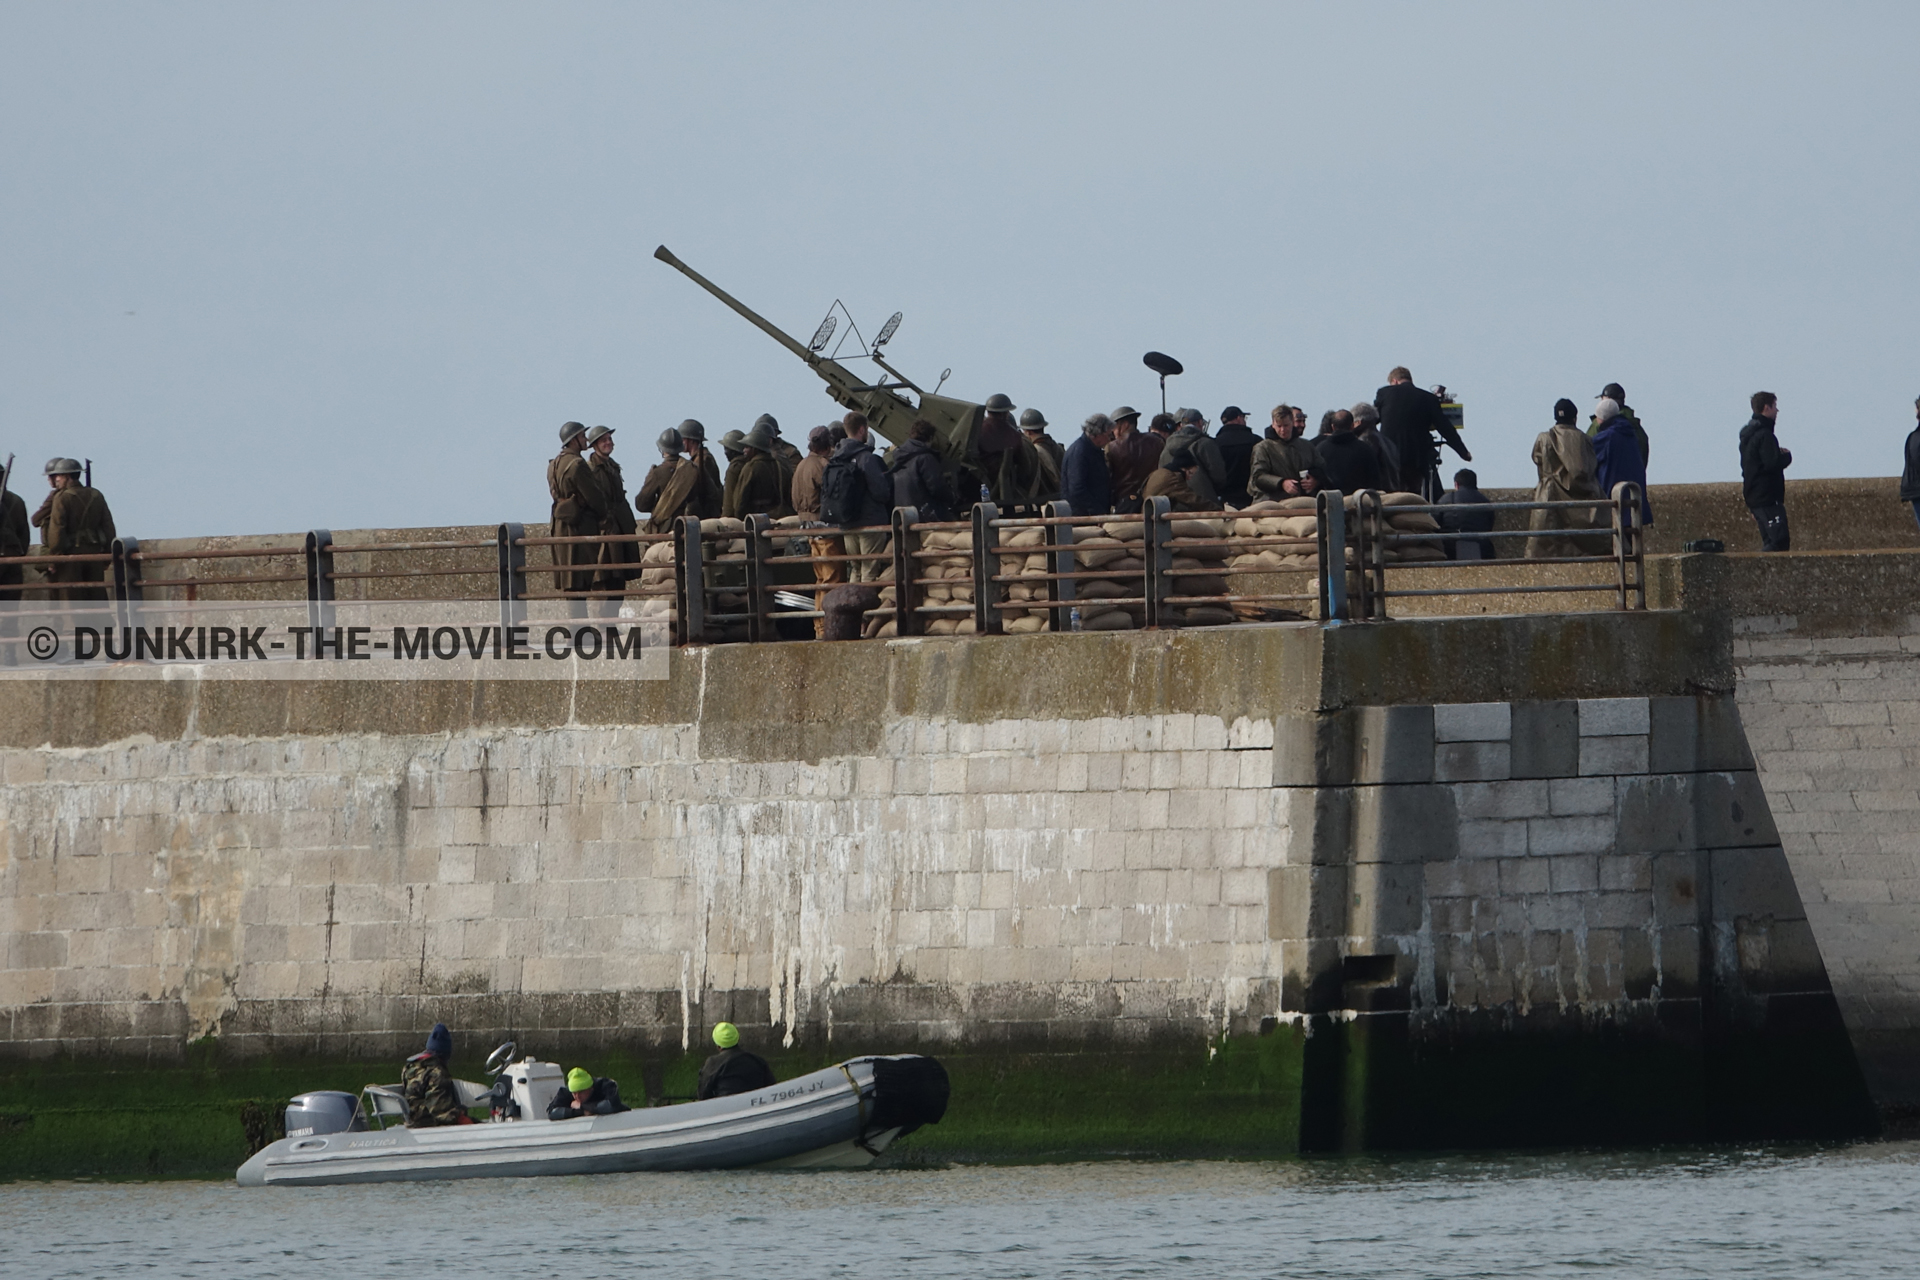 Picture with cannon, supernumeraries, EST pier, inflatable dinghy,  from behind the scene of the Dunkirk movie by Nolan